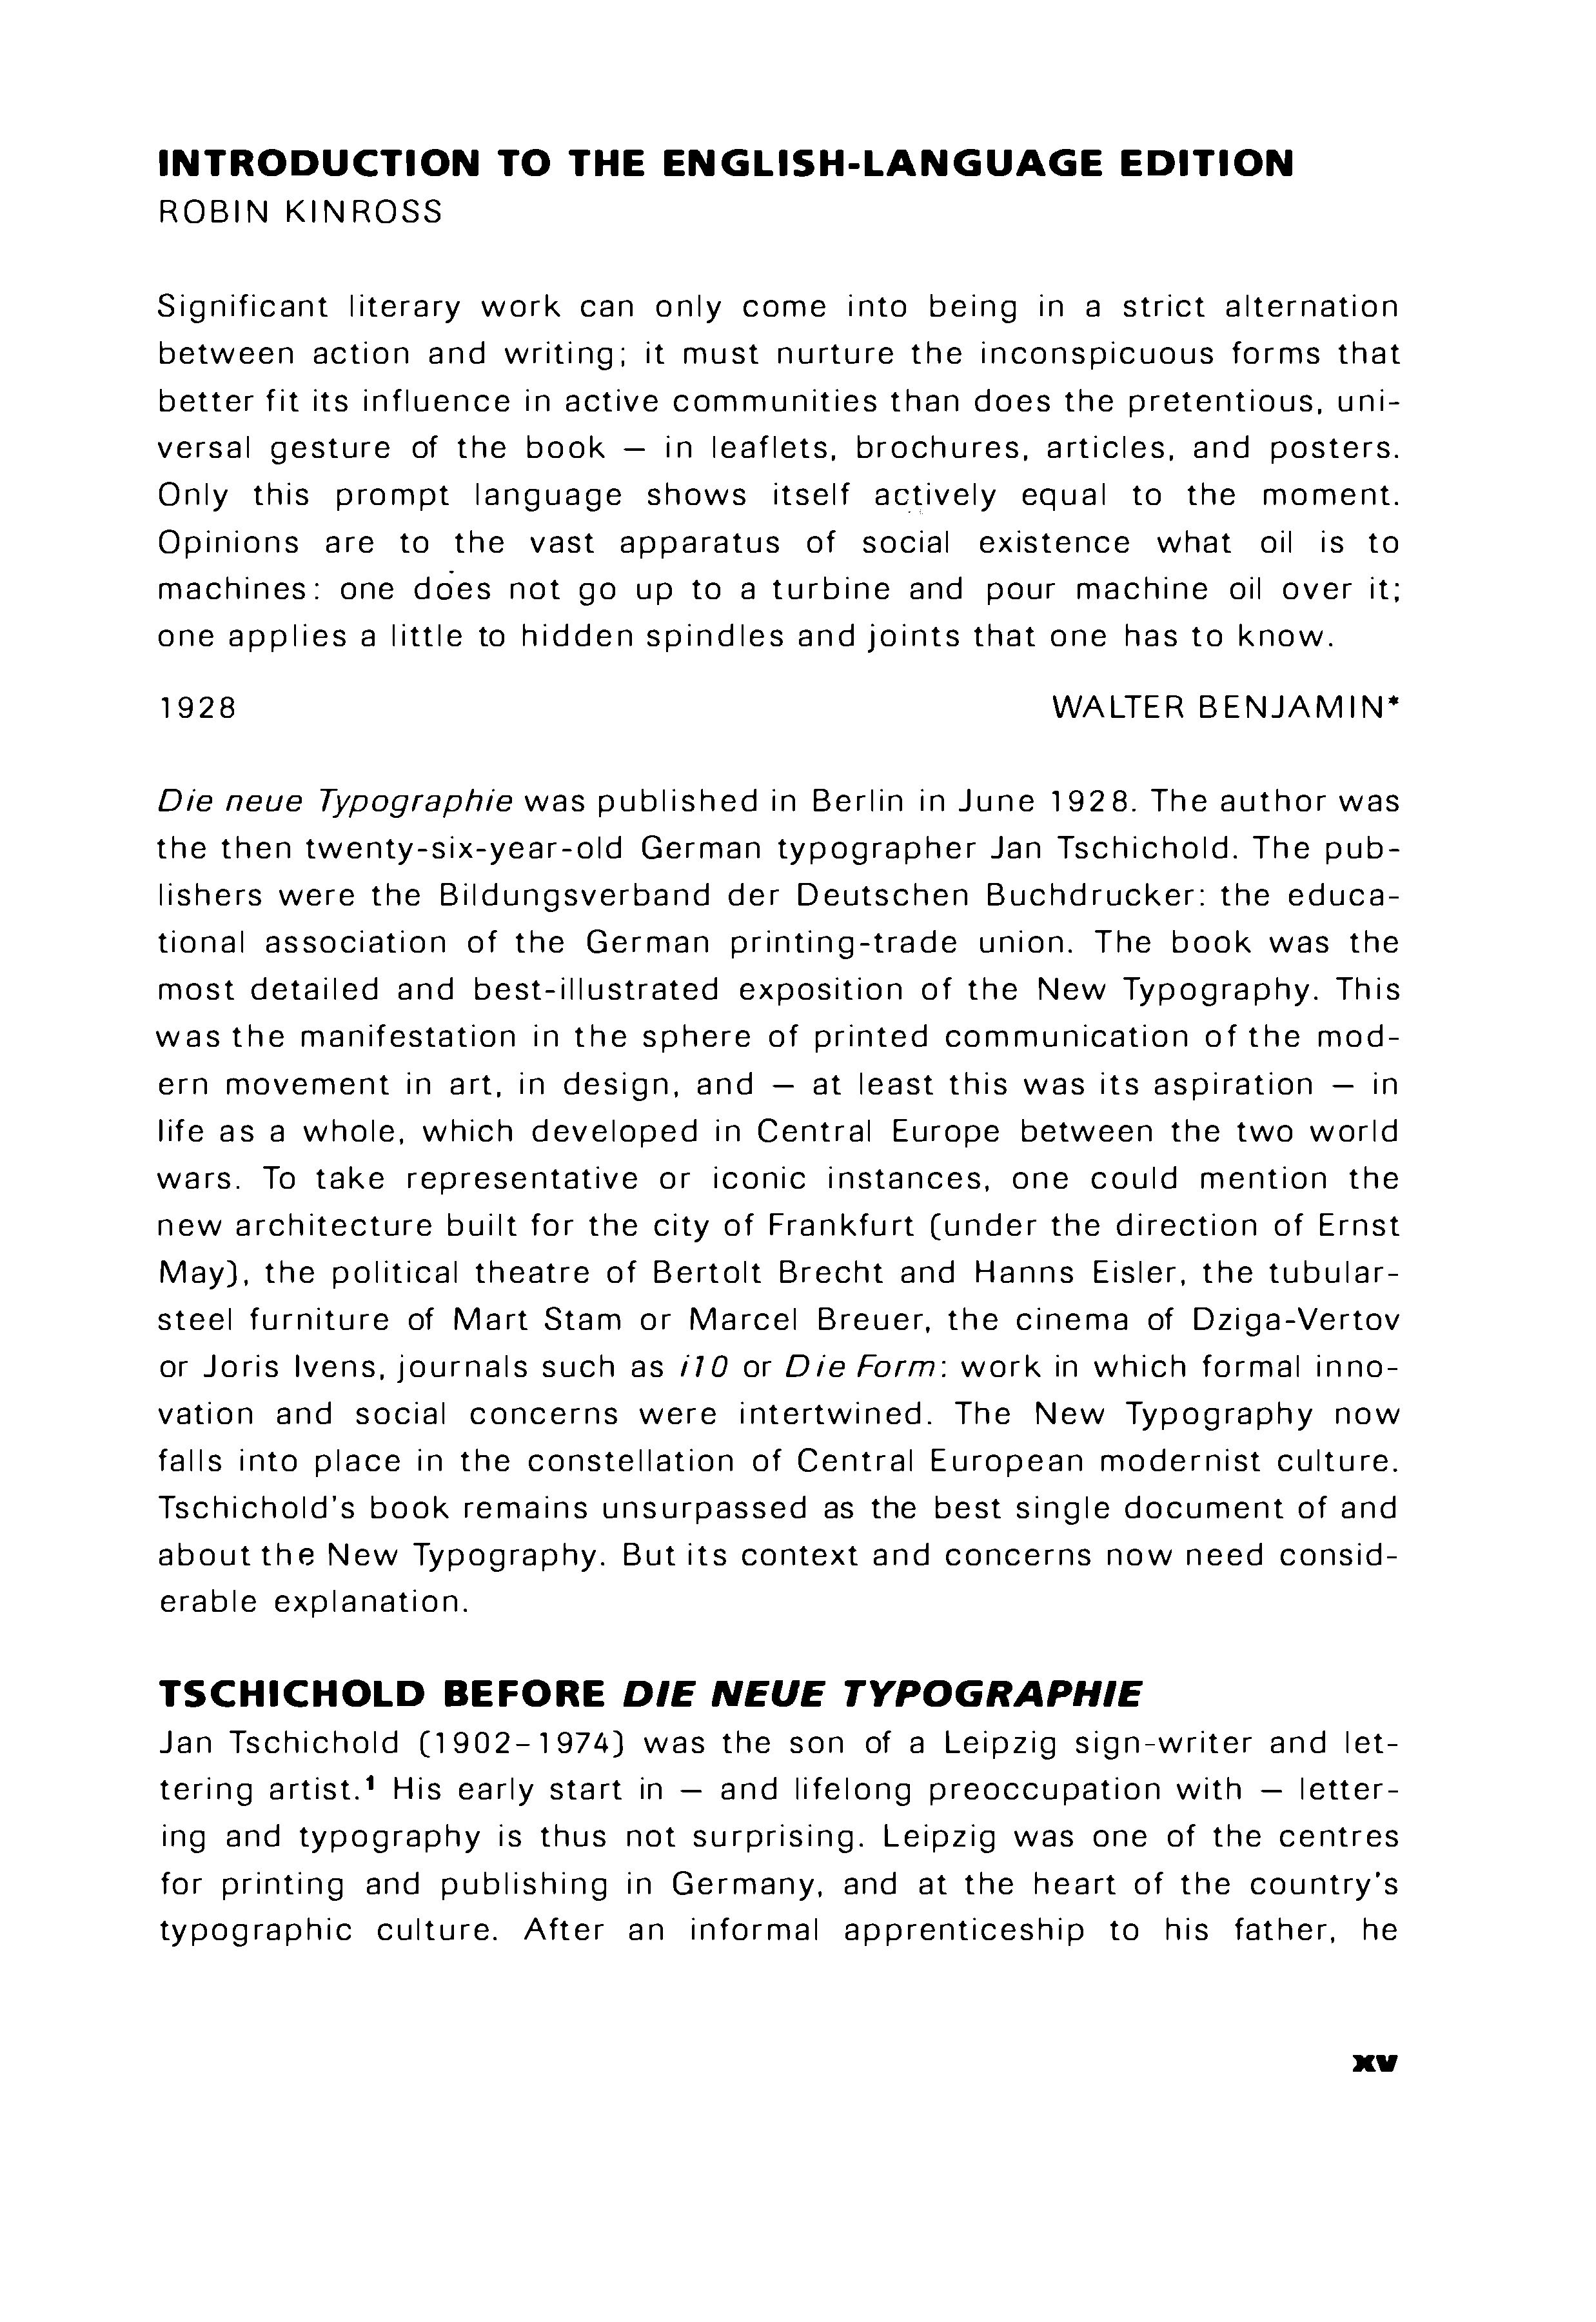 jan-tschichold-the-new-typography-1928_page_015